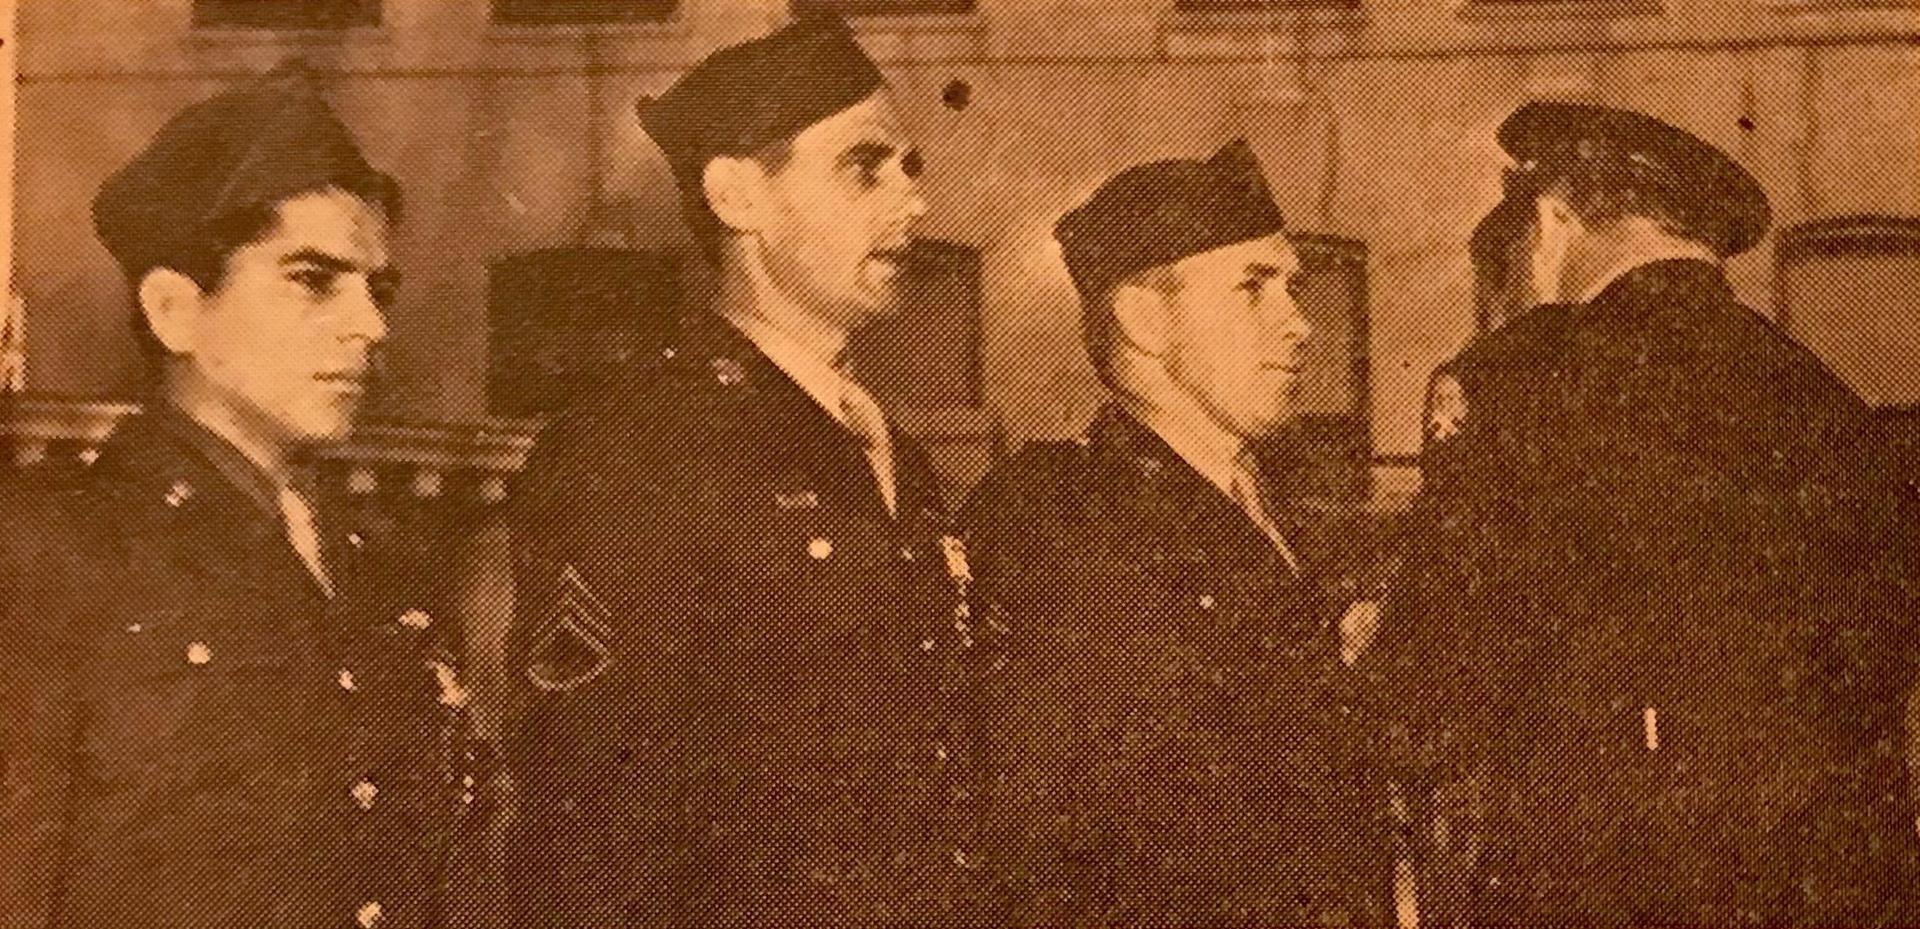 Sergeant Frank Briones (left) flew 60 missions in the pacific